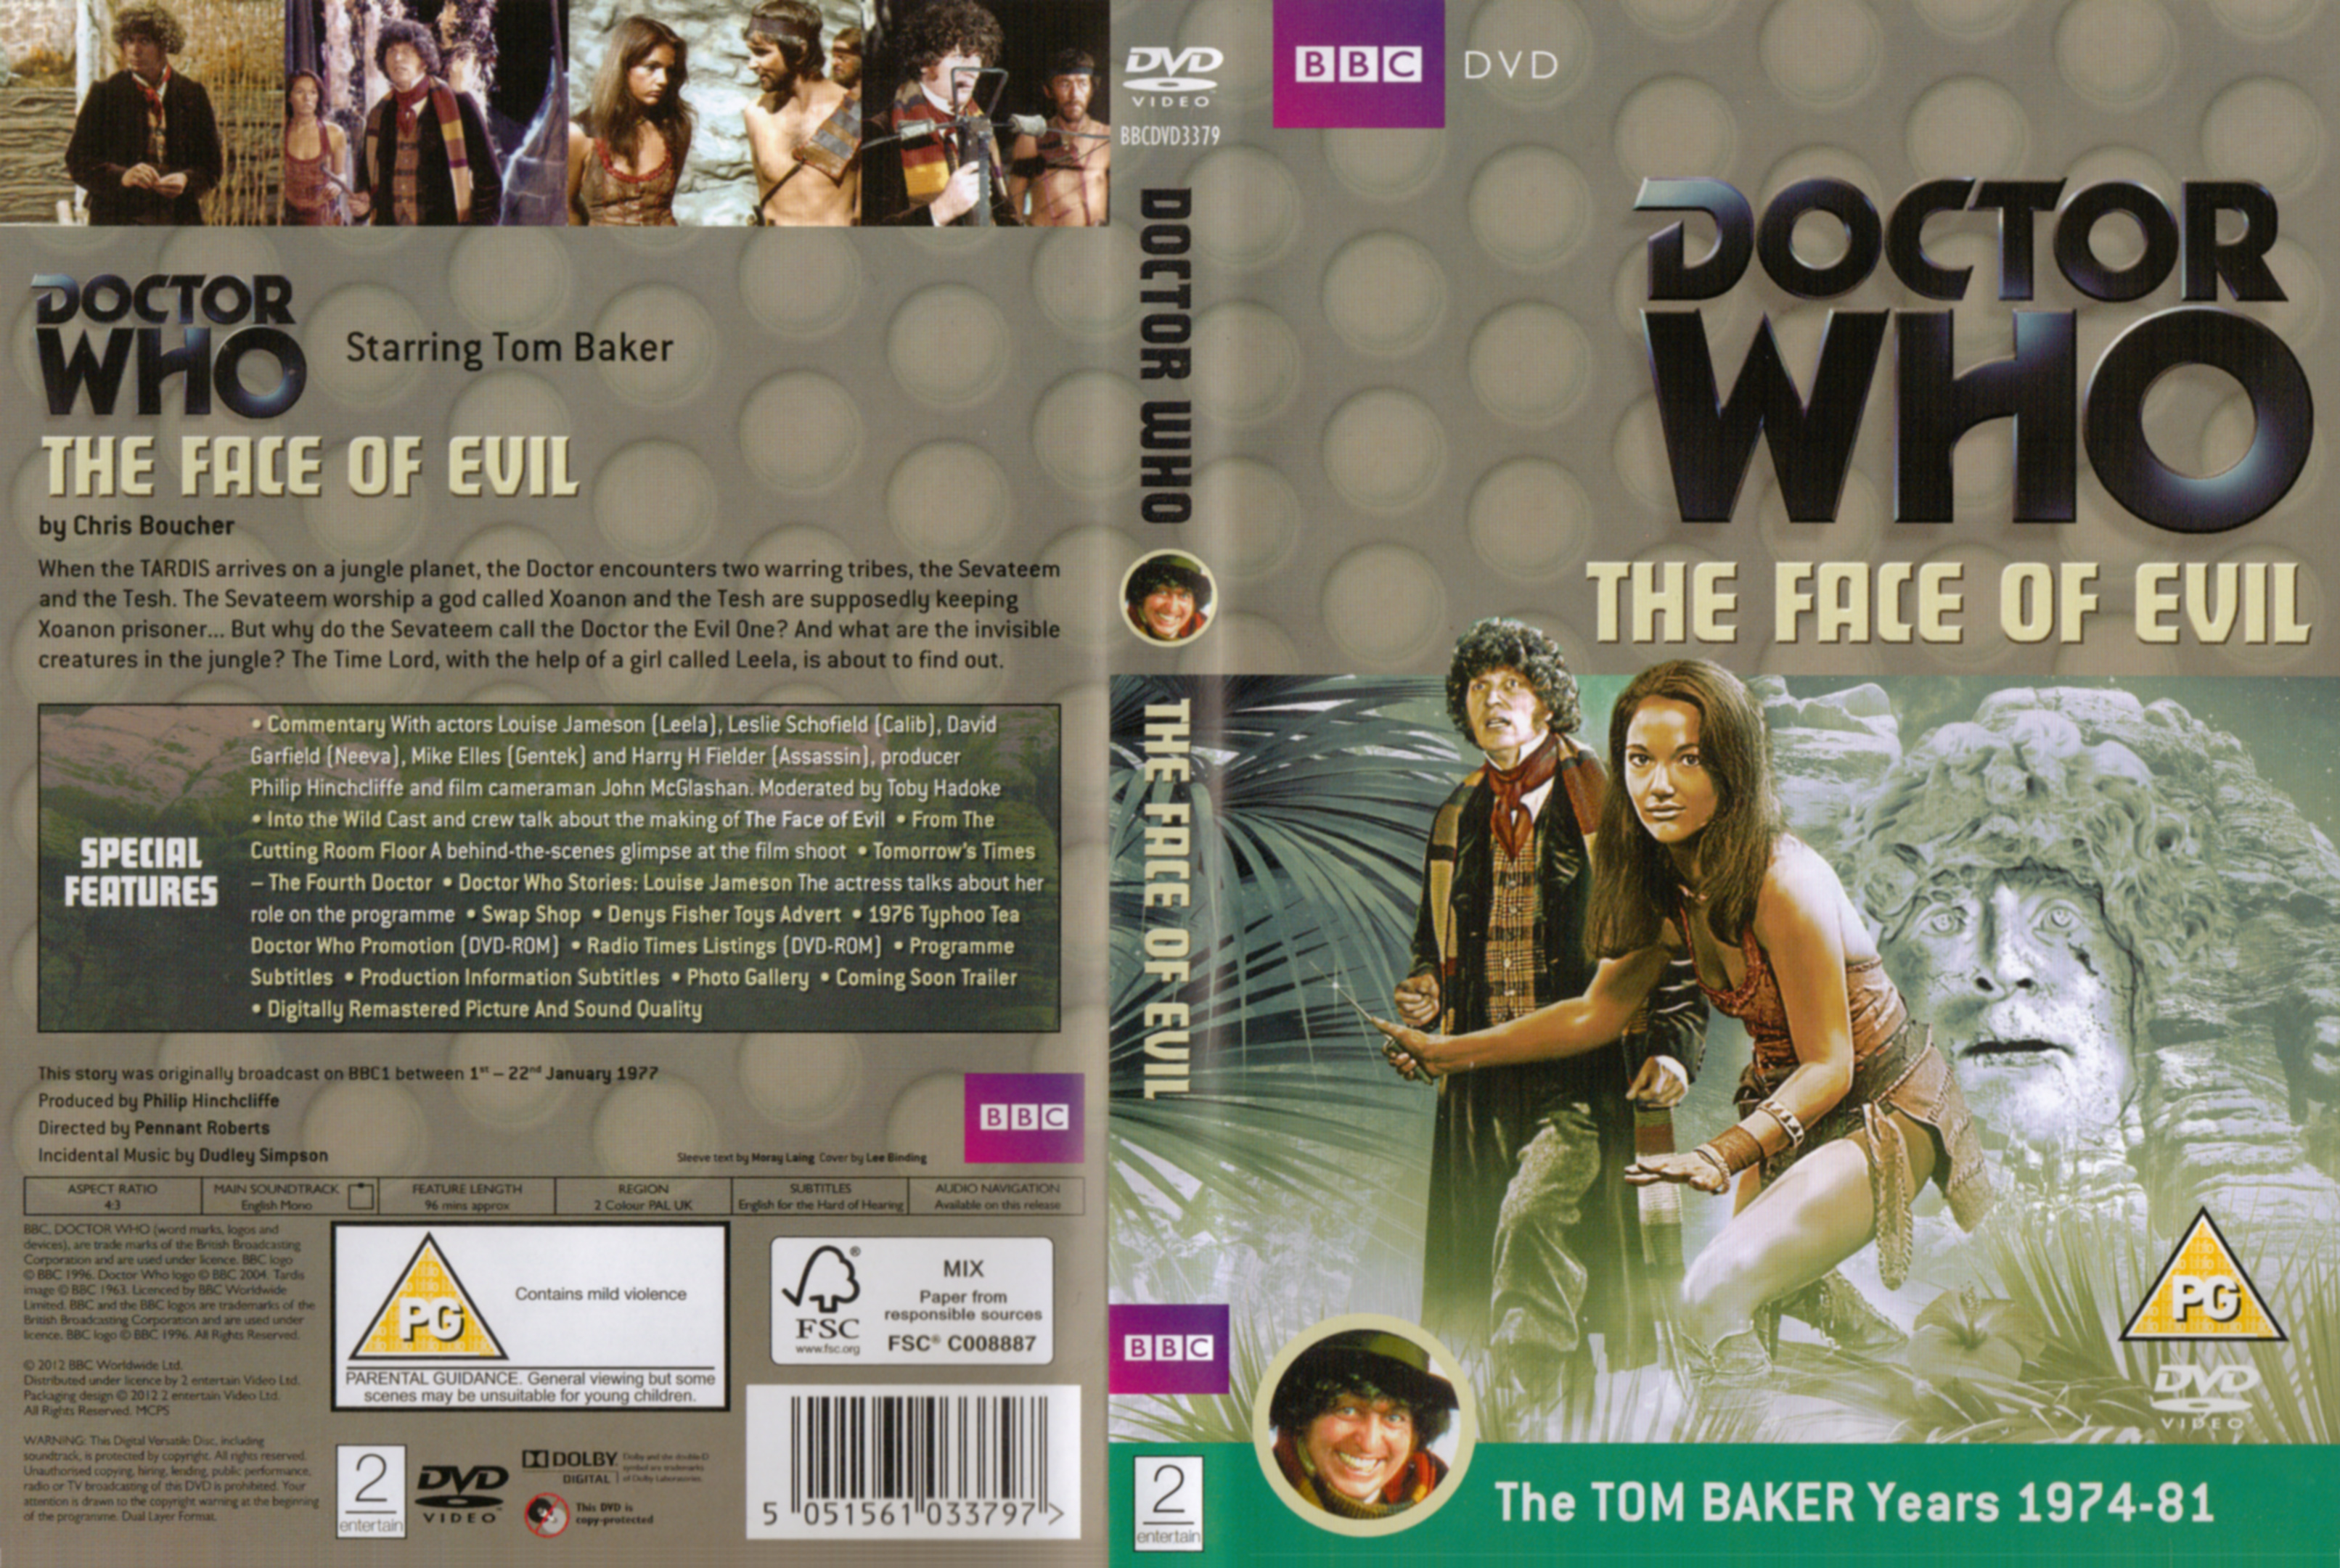 The Face Of Evil DVD